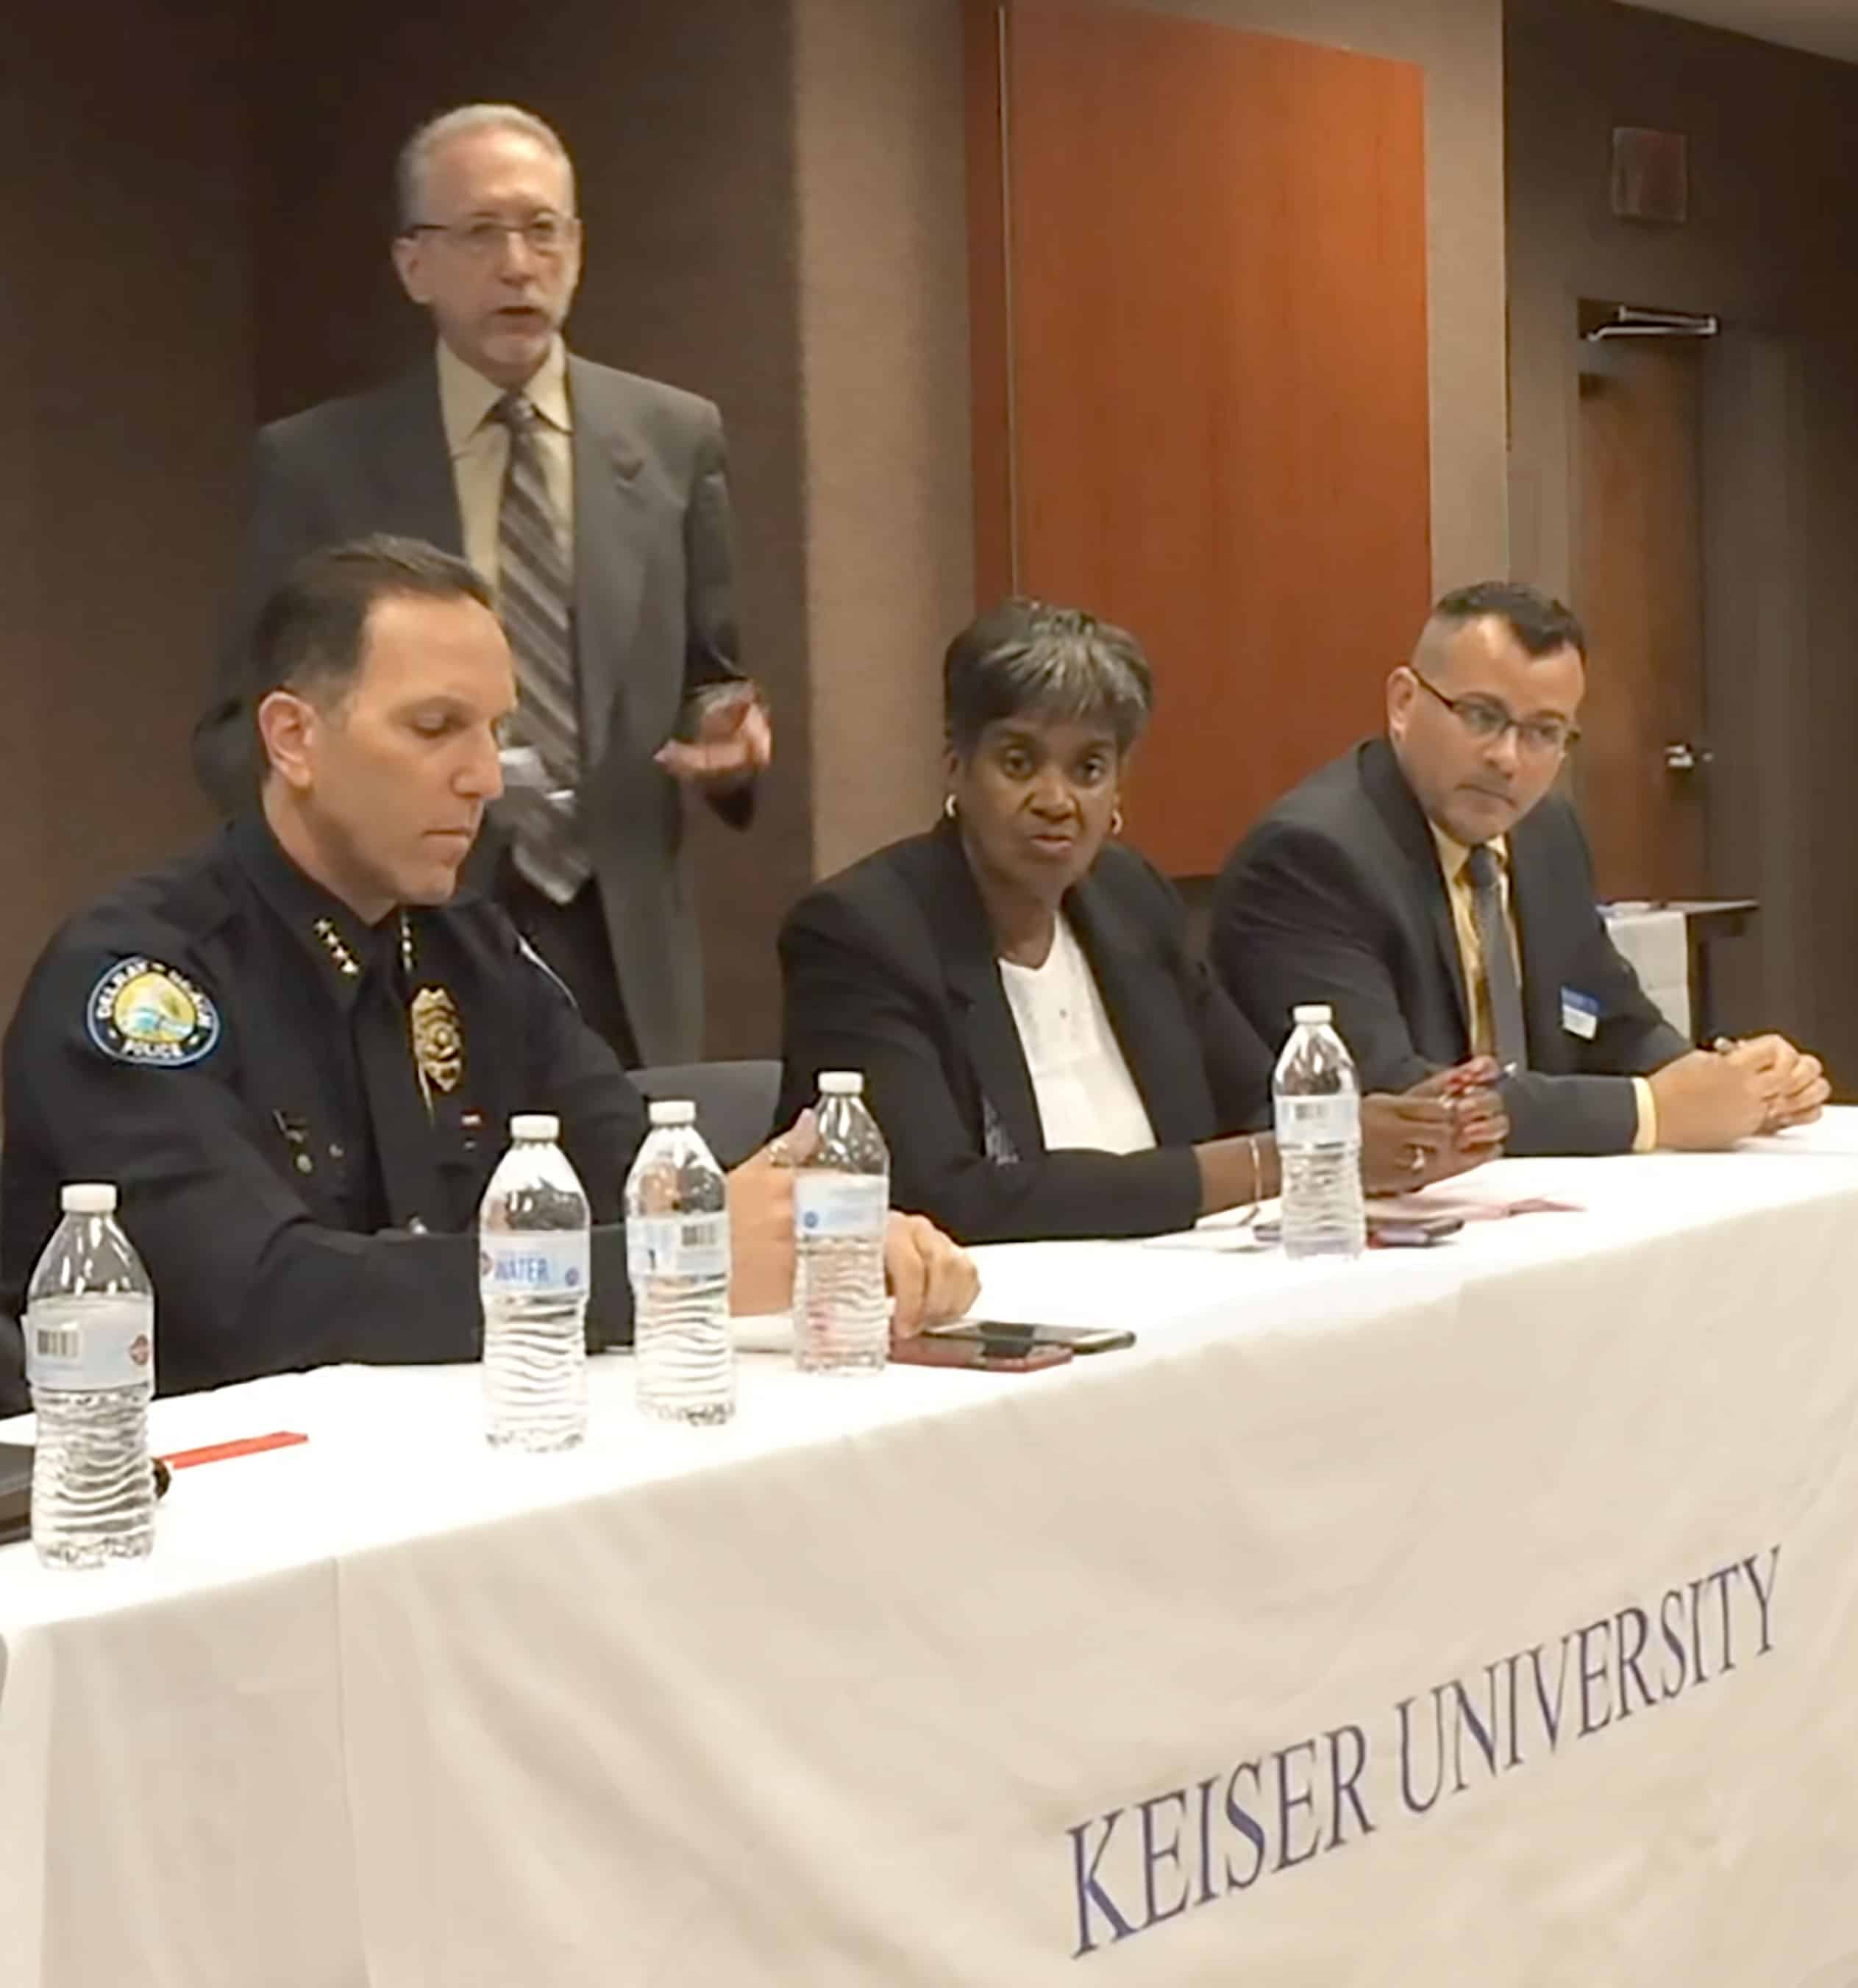 Keiser University Symposium Presents Community Policing   as an Effective Law Enforcement Tool